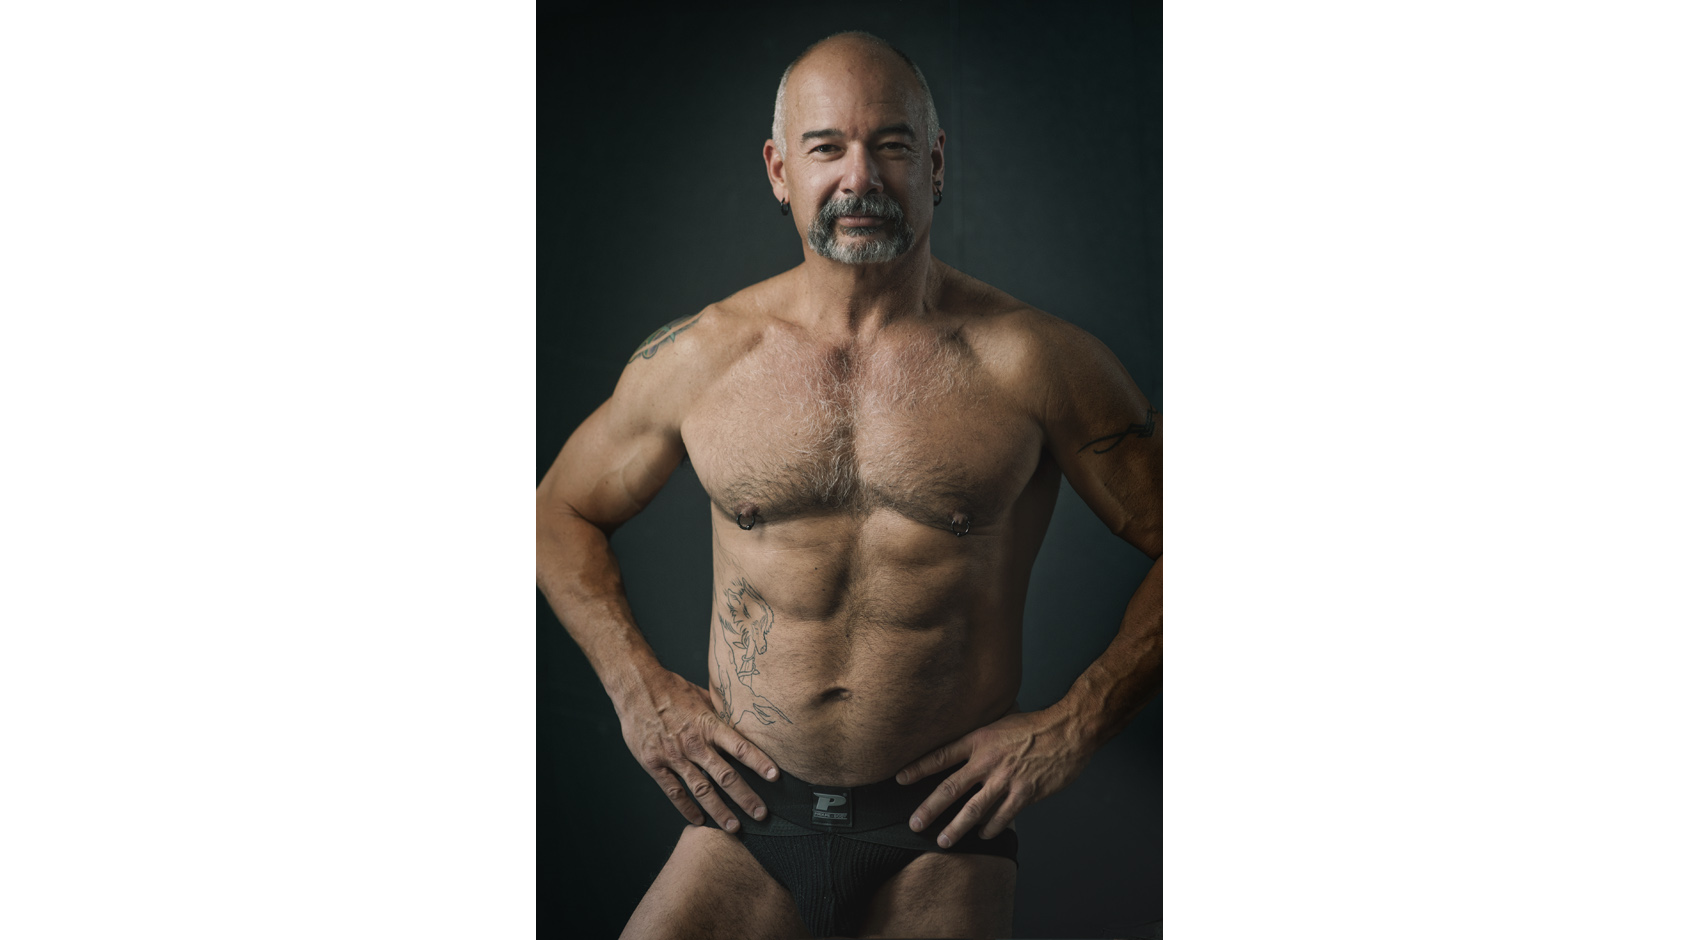 Men Over 50 - James